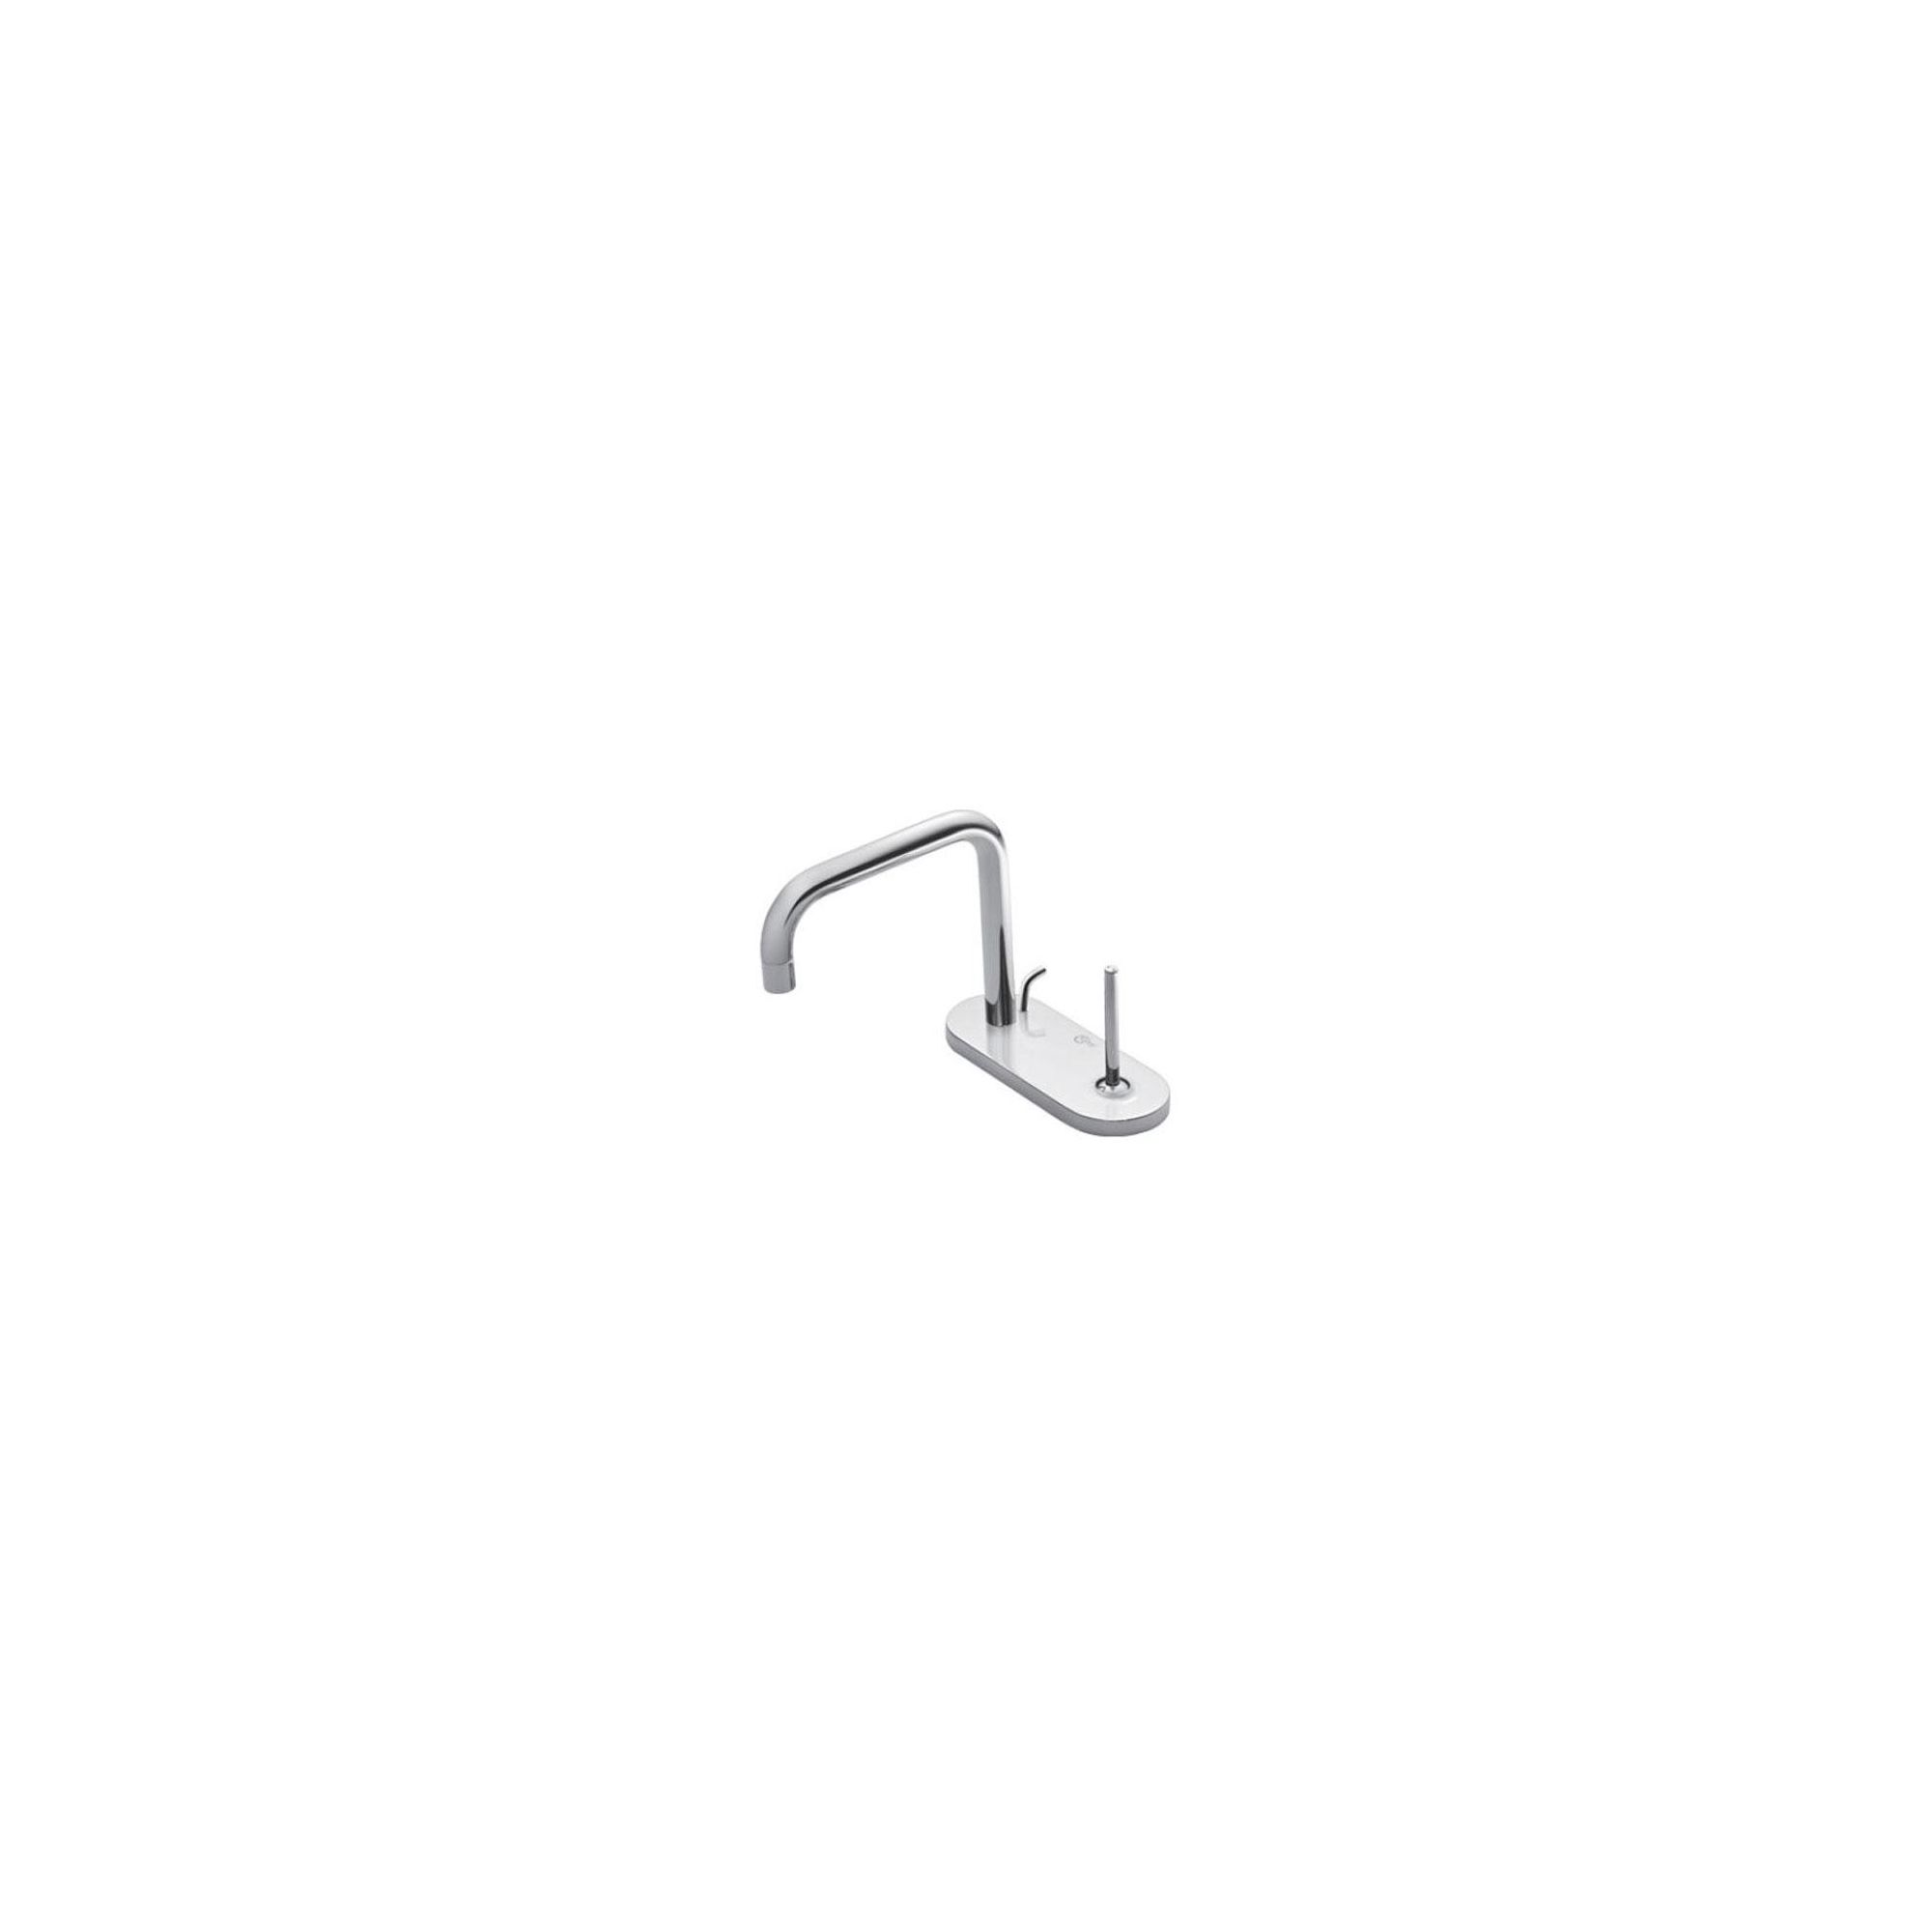 Ideal Standard Simply U 2 Tap Hole Cylindrical Spout Basin Mixer Tap with 1 Oval Backplate at Tesco Direct